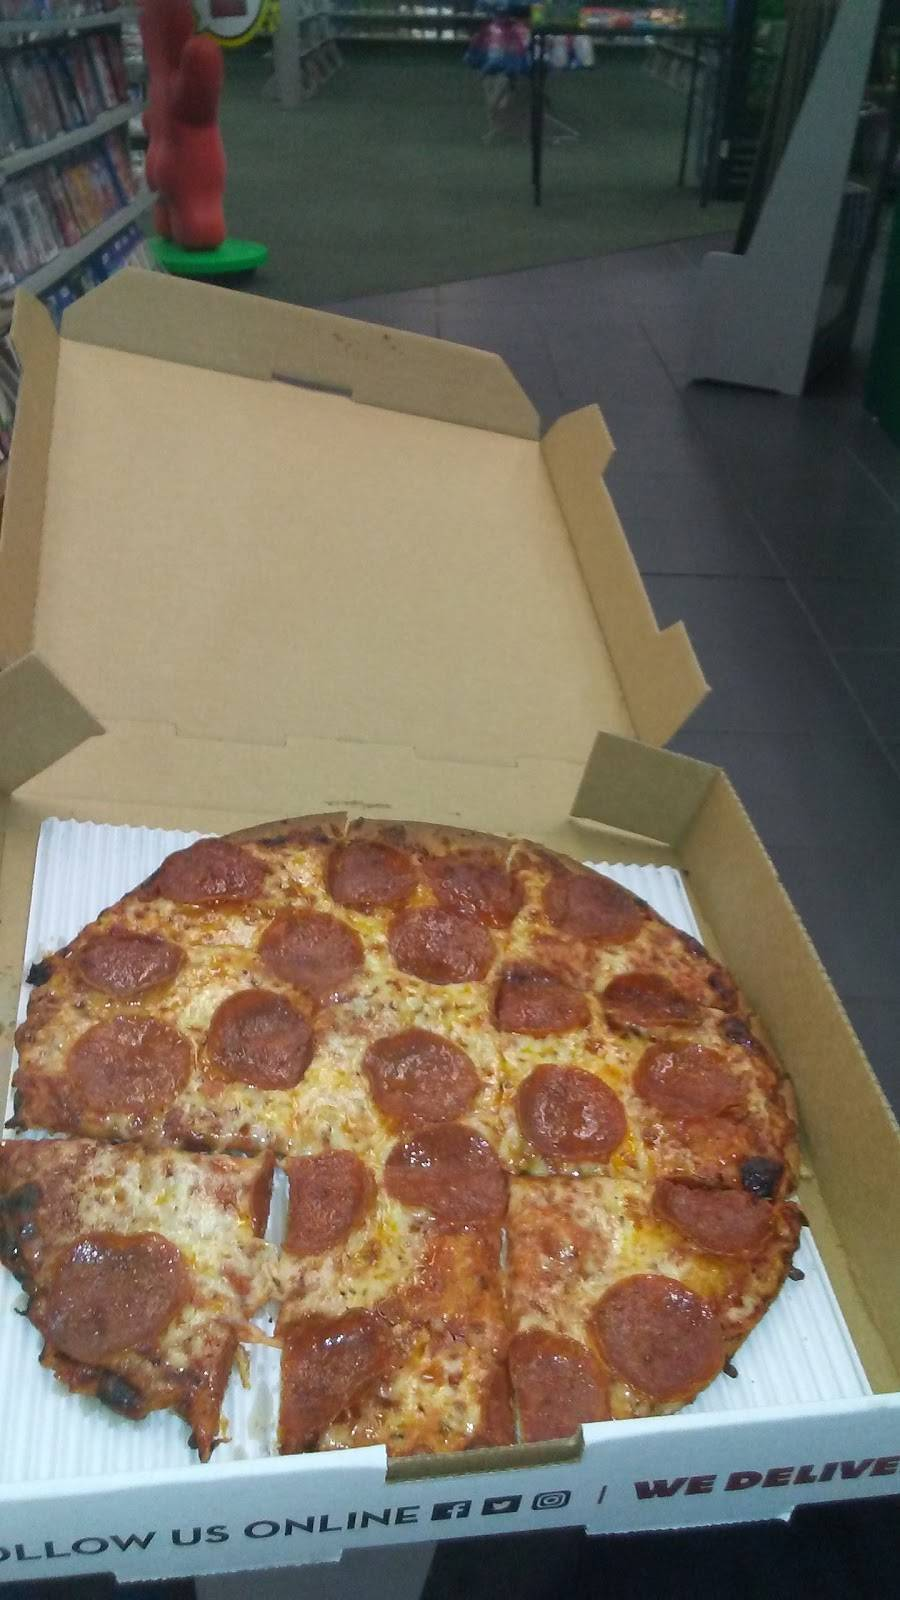 Marcos Pizza   meal delivery   2010 183rd St, Homewood, IL 60430, USA   7086471135 OR +1 708-647-1135